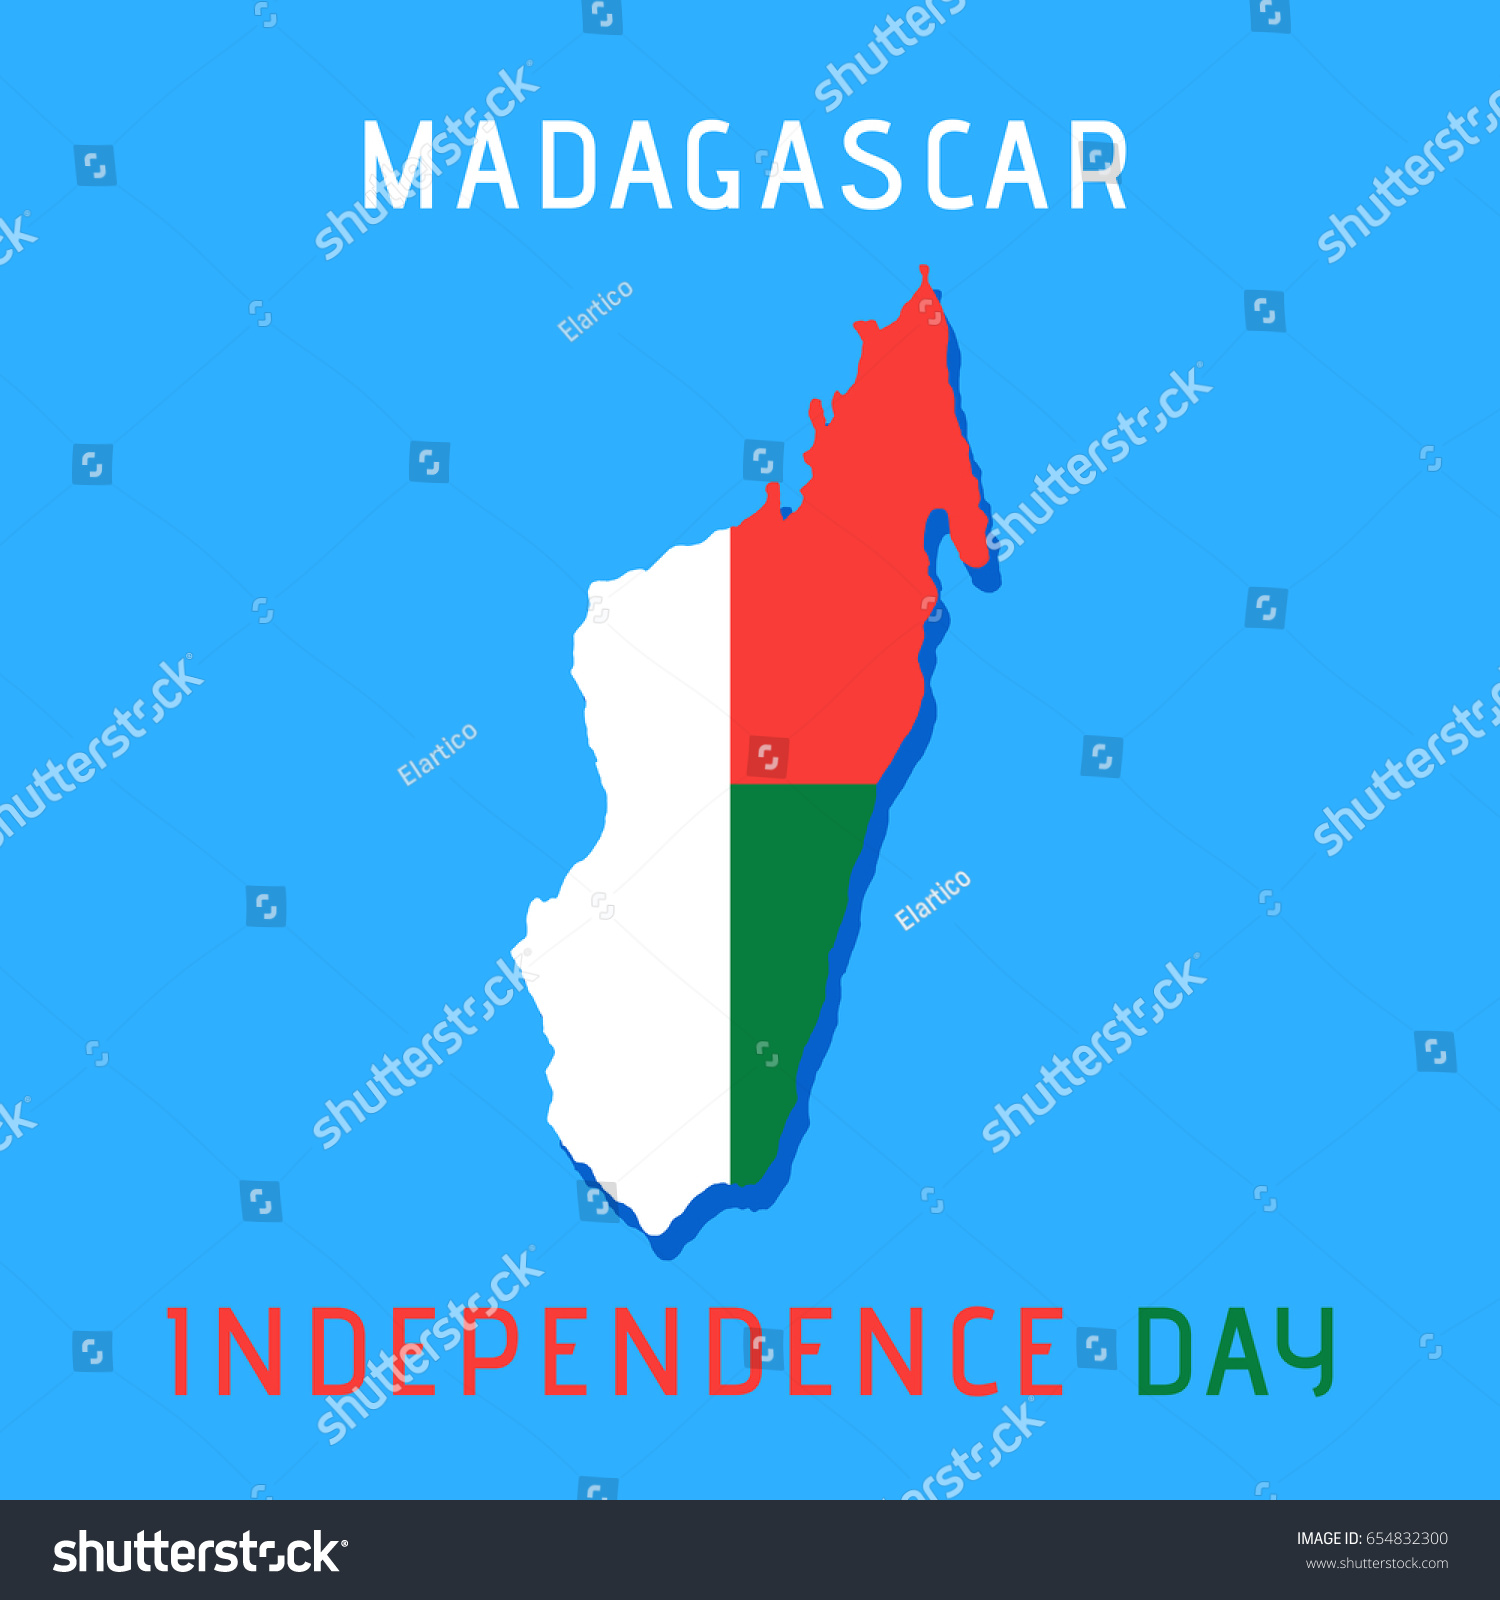 Madagascar independence day greeting card map stock vector 654832300 madagascar independence day greeting card with map of the island template for your design kristyandbryce Gallery